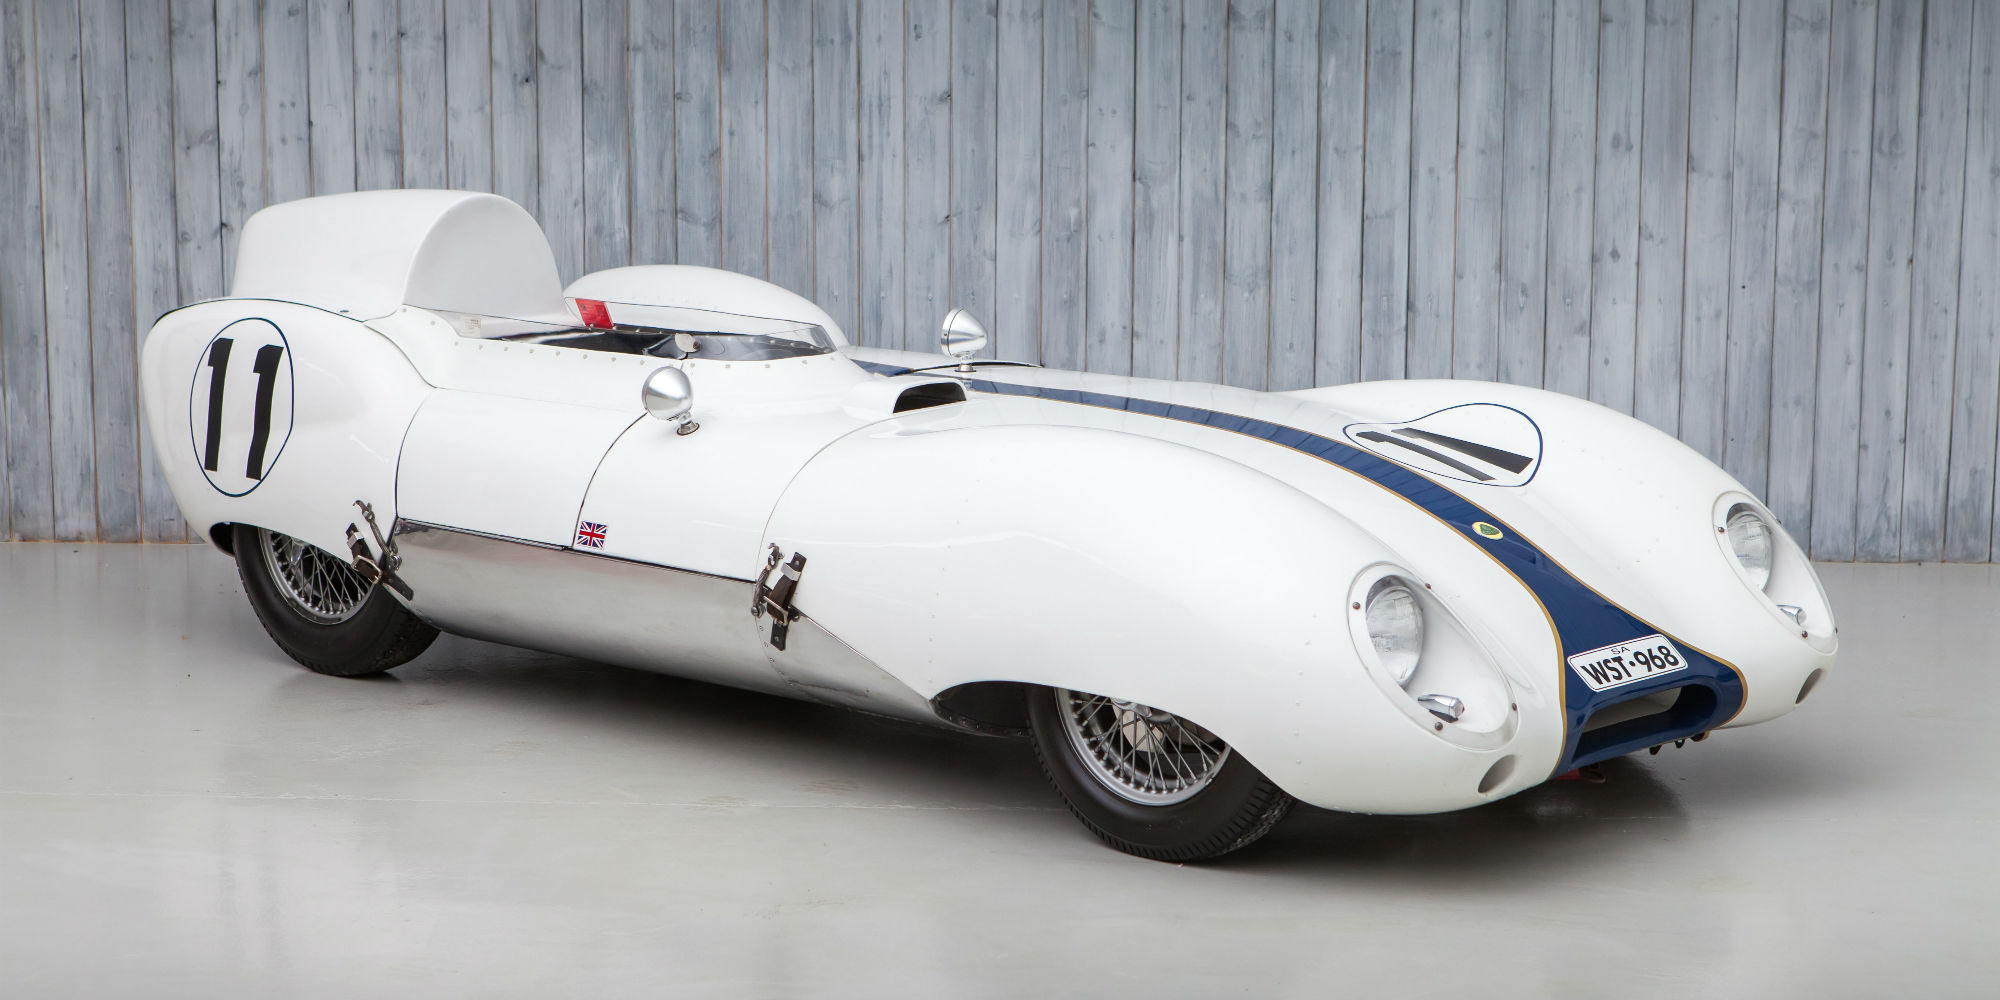 1959 Lotus Eleven Series 2 to Le Mans Specification